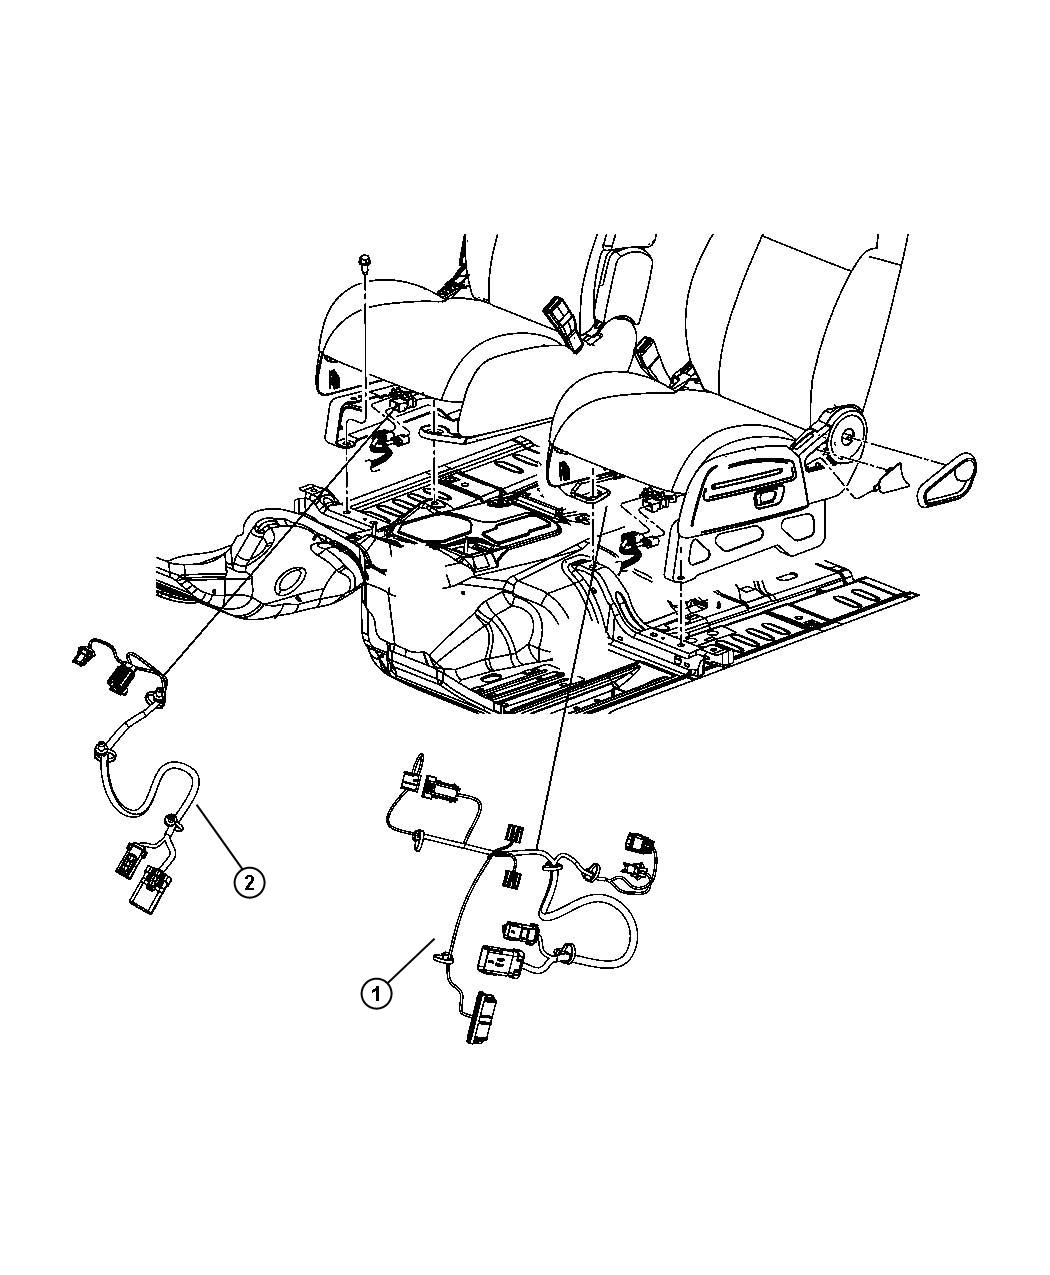 Jeep Compass Wiring. Seat. Heated seat, track position